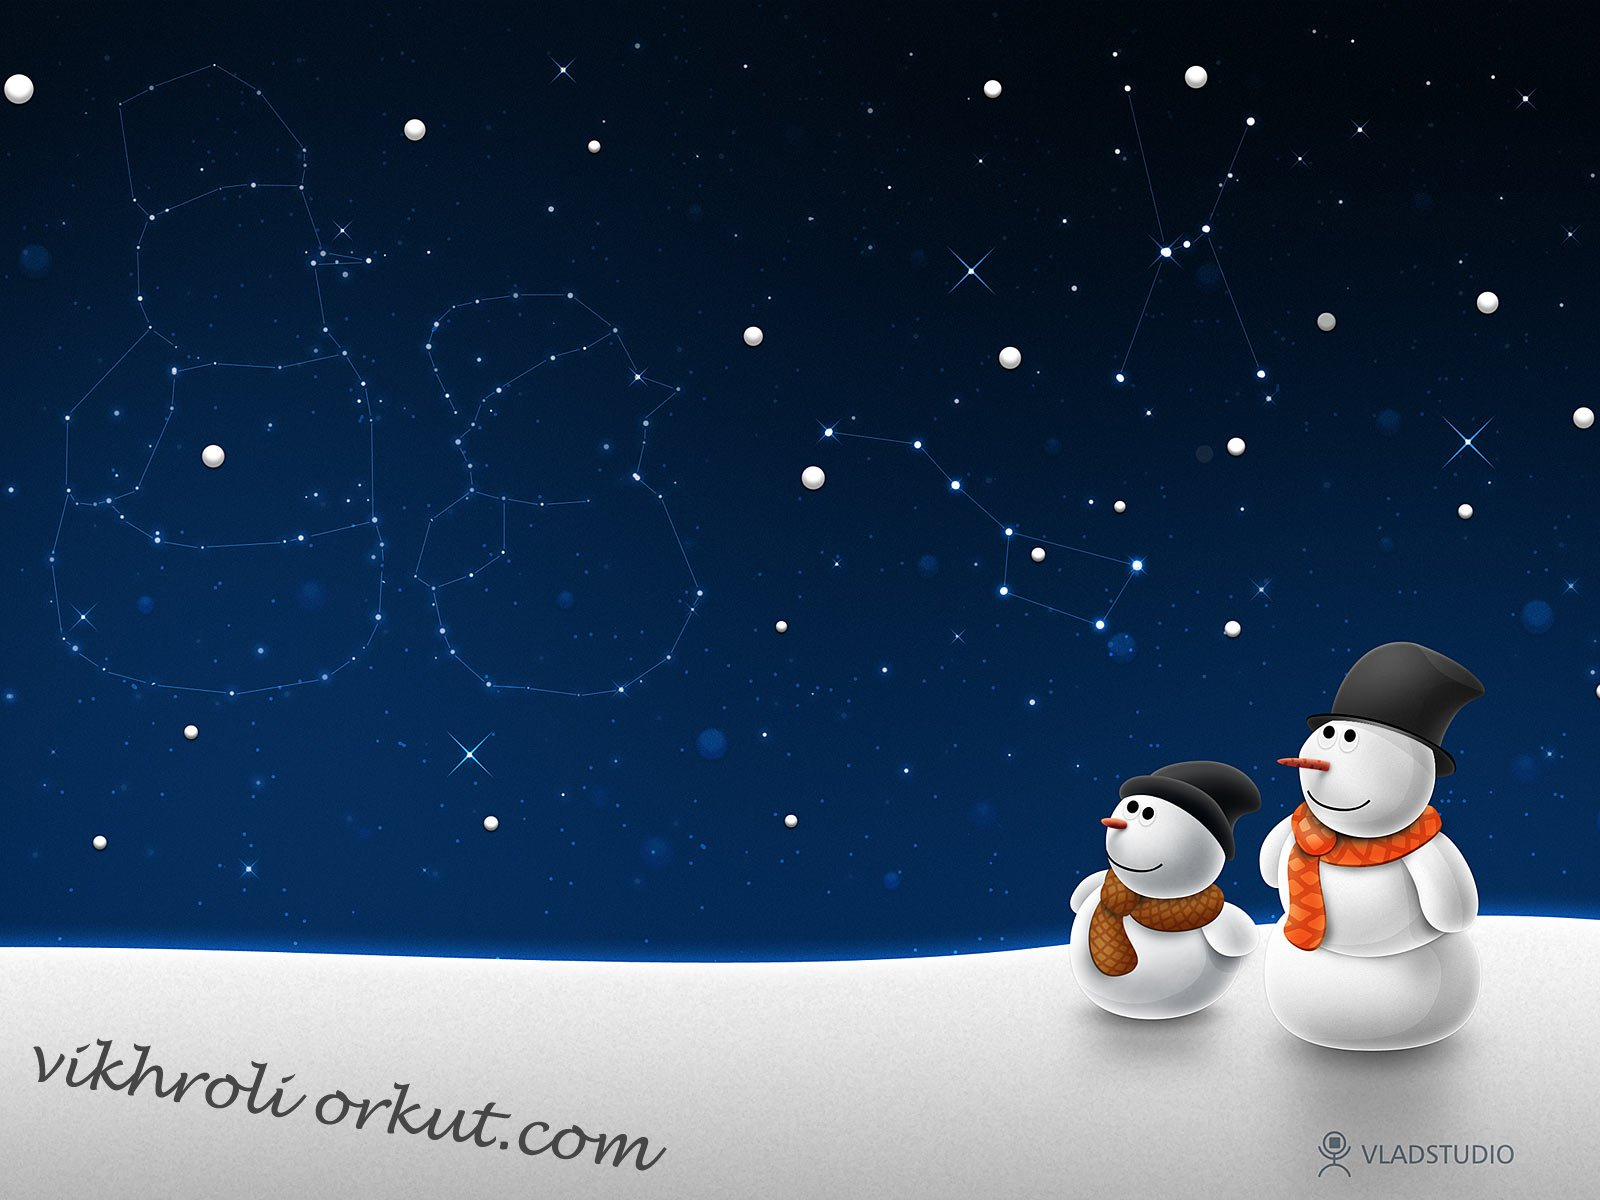 Christmas 3d Vikhroli Orkut Wallpaper 1600x1200